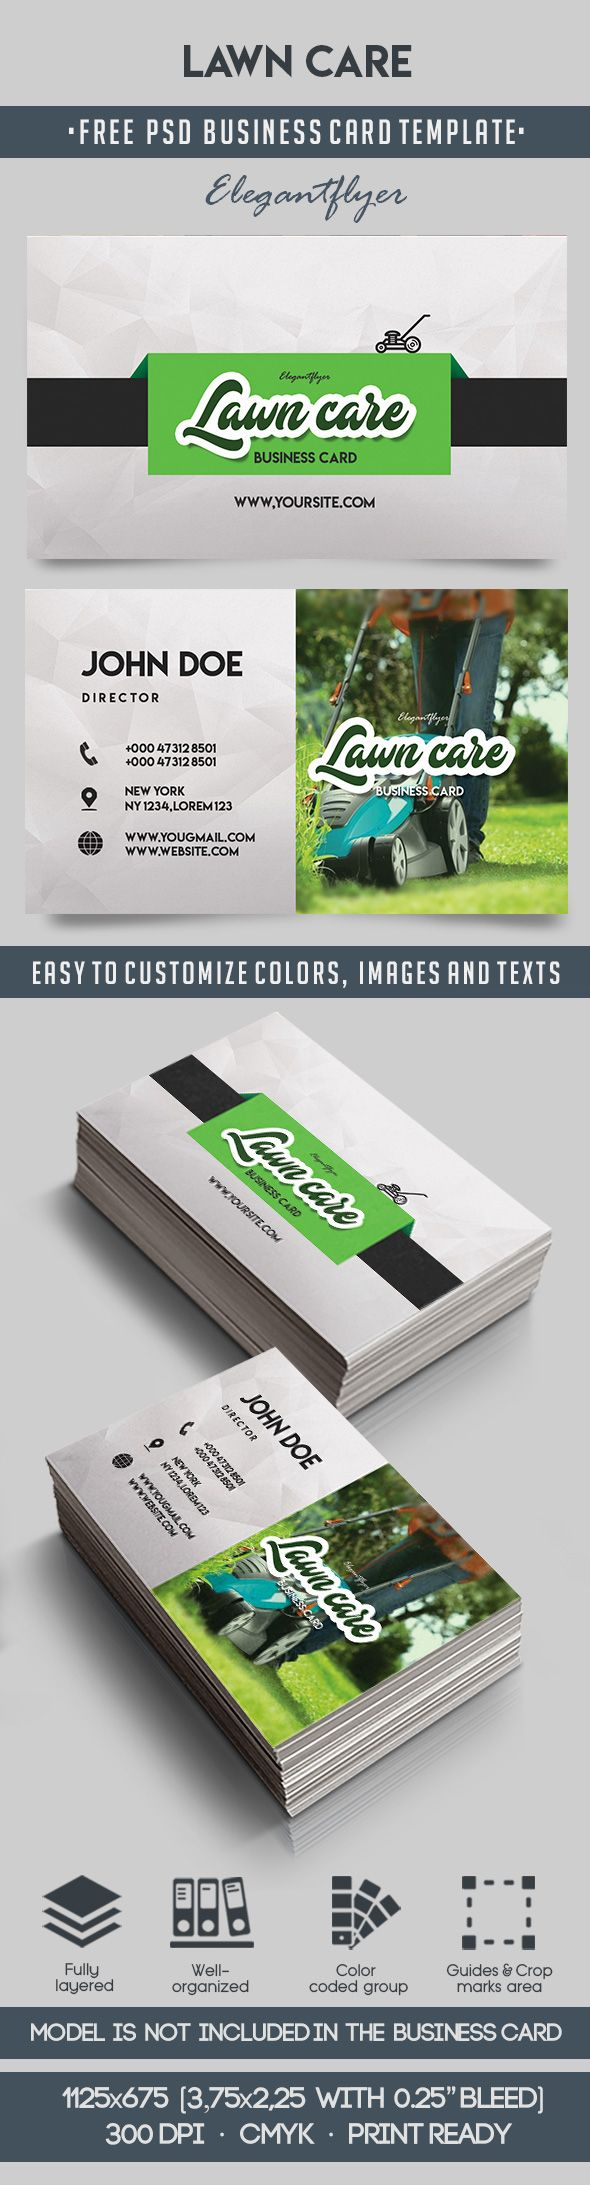 Lawn Care – Free Business Card Templates PSD – by ElegantFlyer